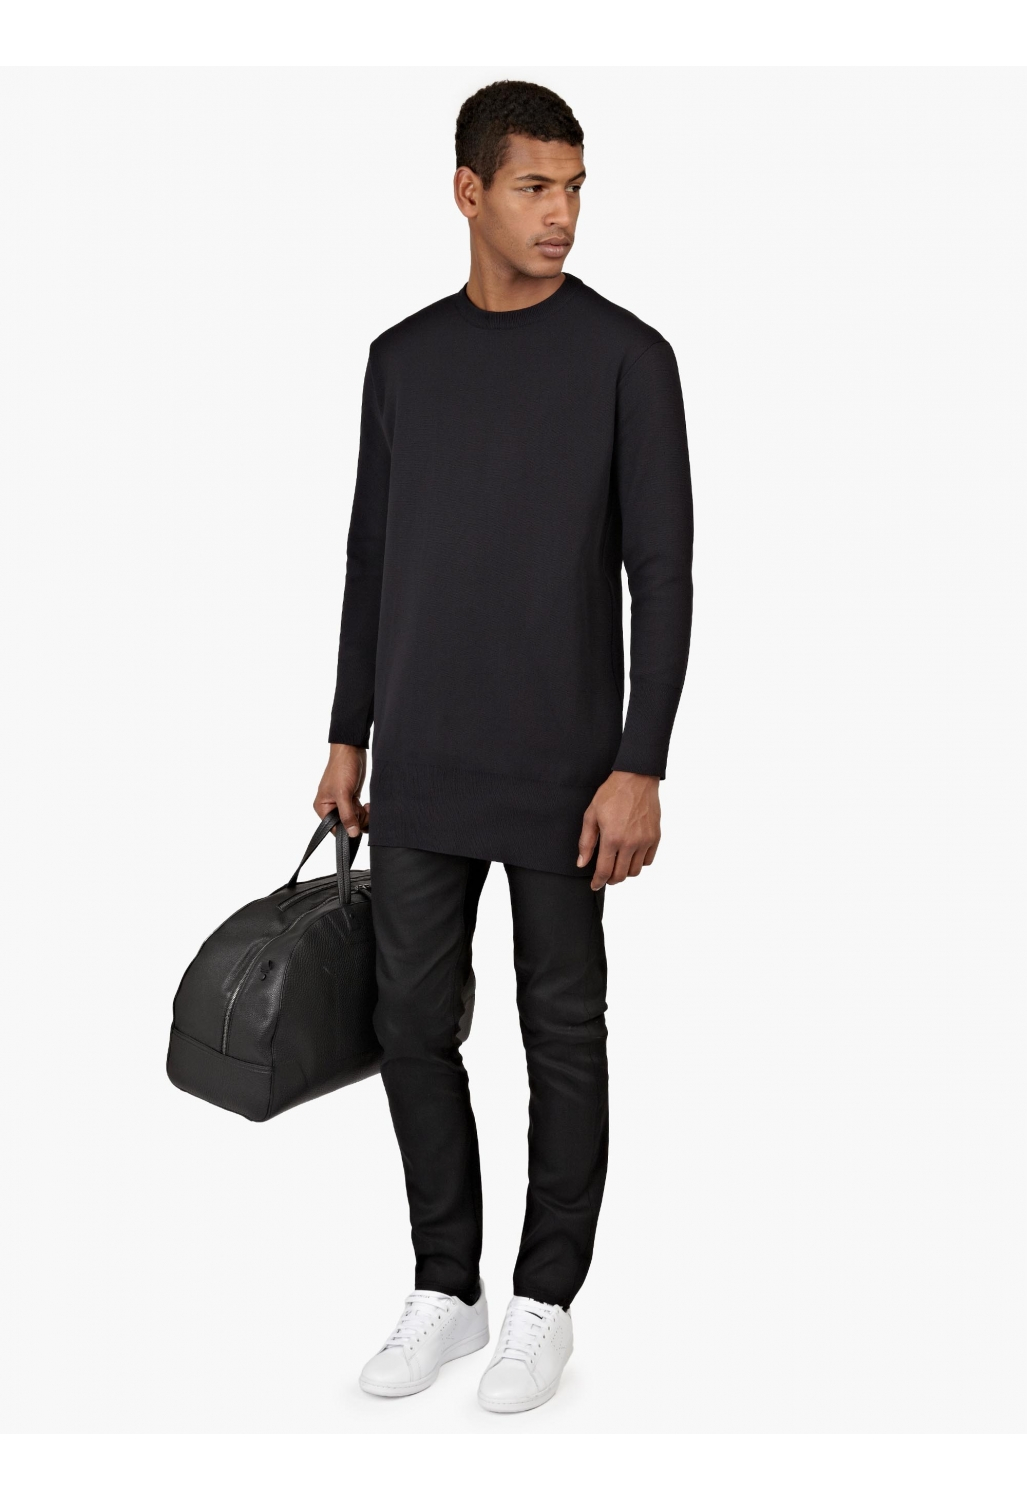 jil sander black longline sweatshirt in blue for men lyst. Black Bedroom Furniture Sets. Home Design Ideas